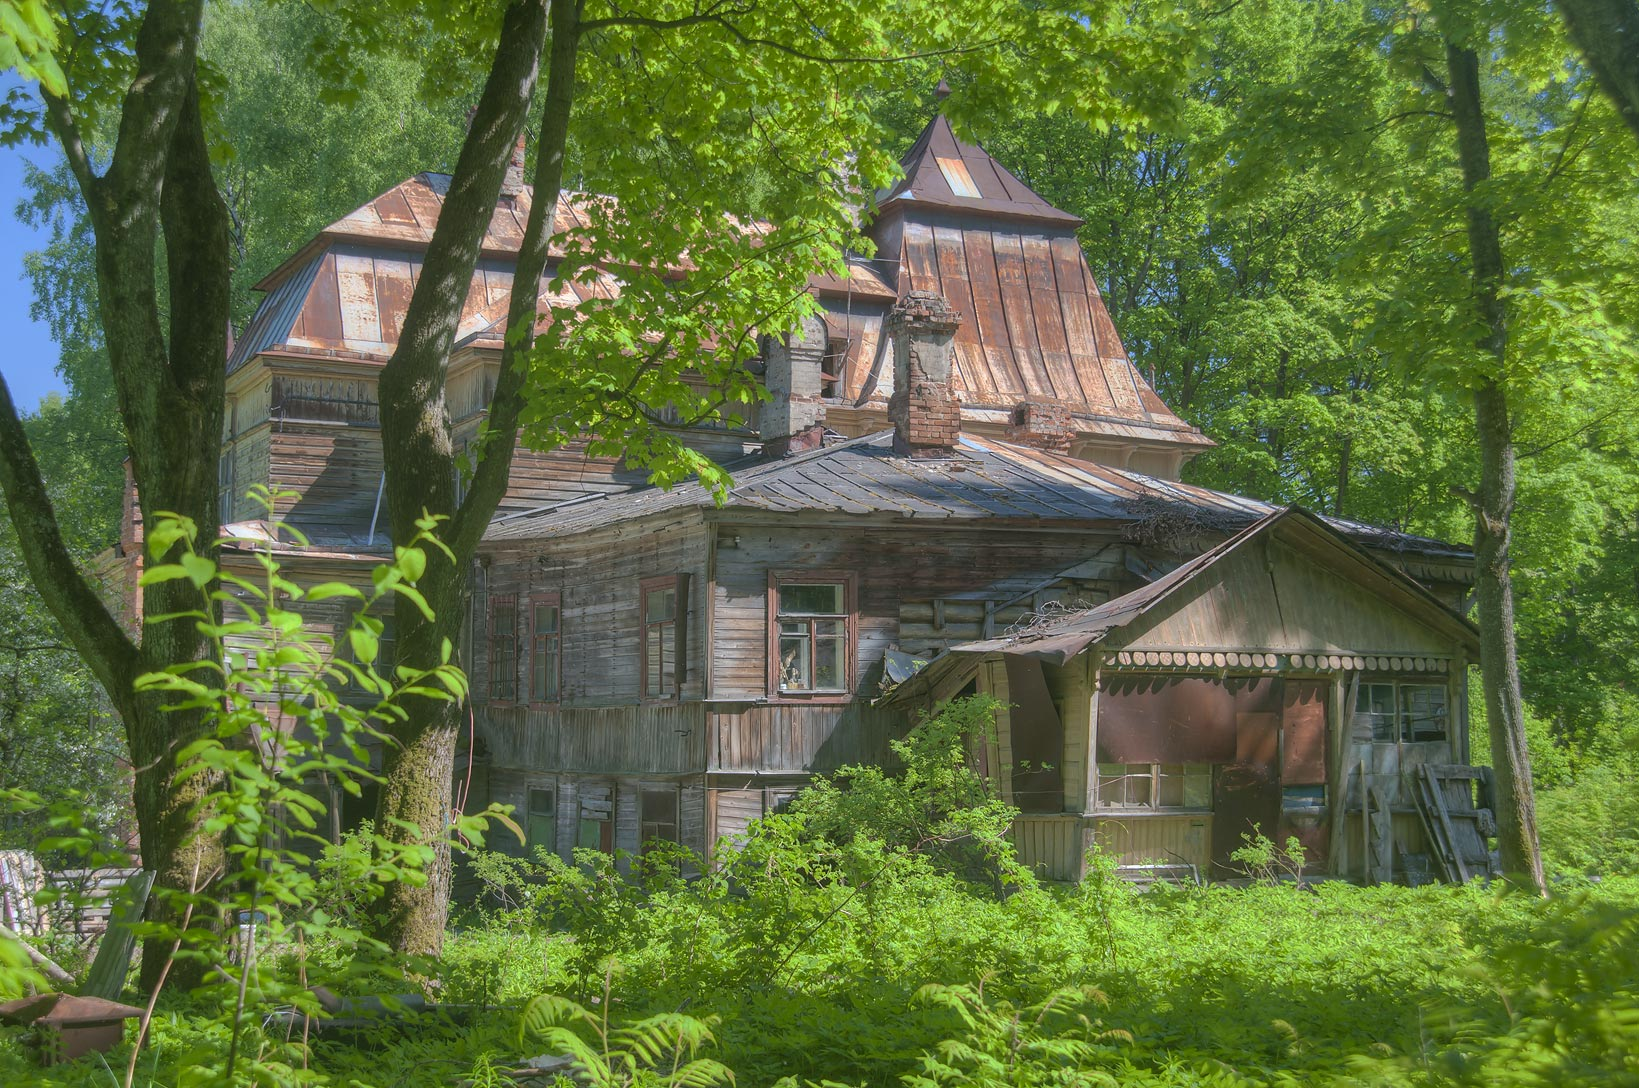 Dacha (summer house) of G. E. Mesmakher in Shuvalovo Park. St.Petersburg, Russia